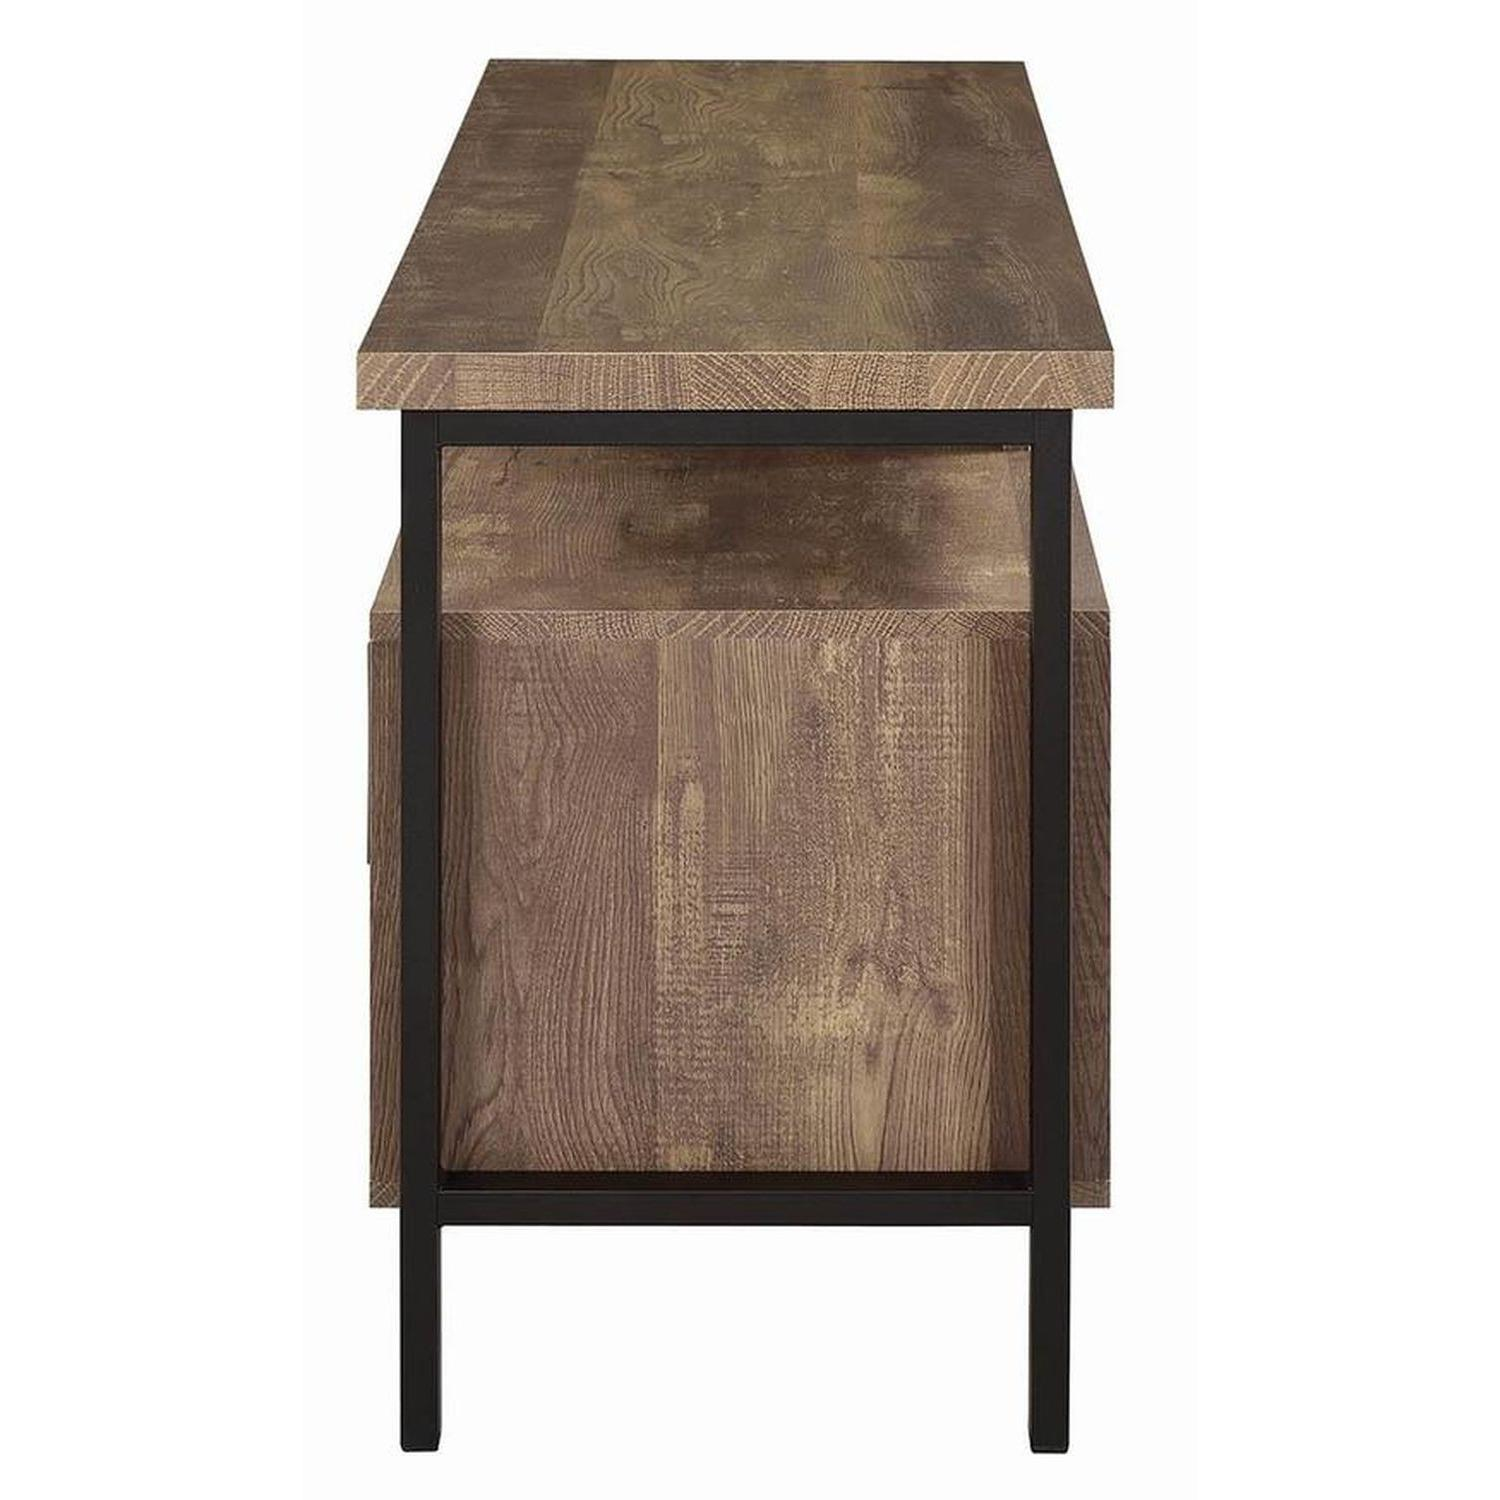 TV Stand In Rustic Oak Finish w/ 2 Cabinets & 2 Drawers - image-6